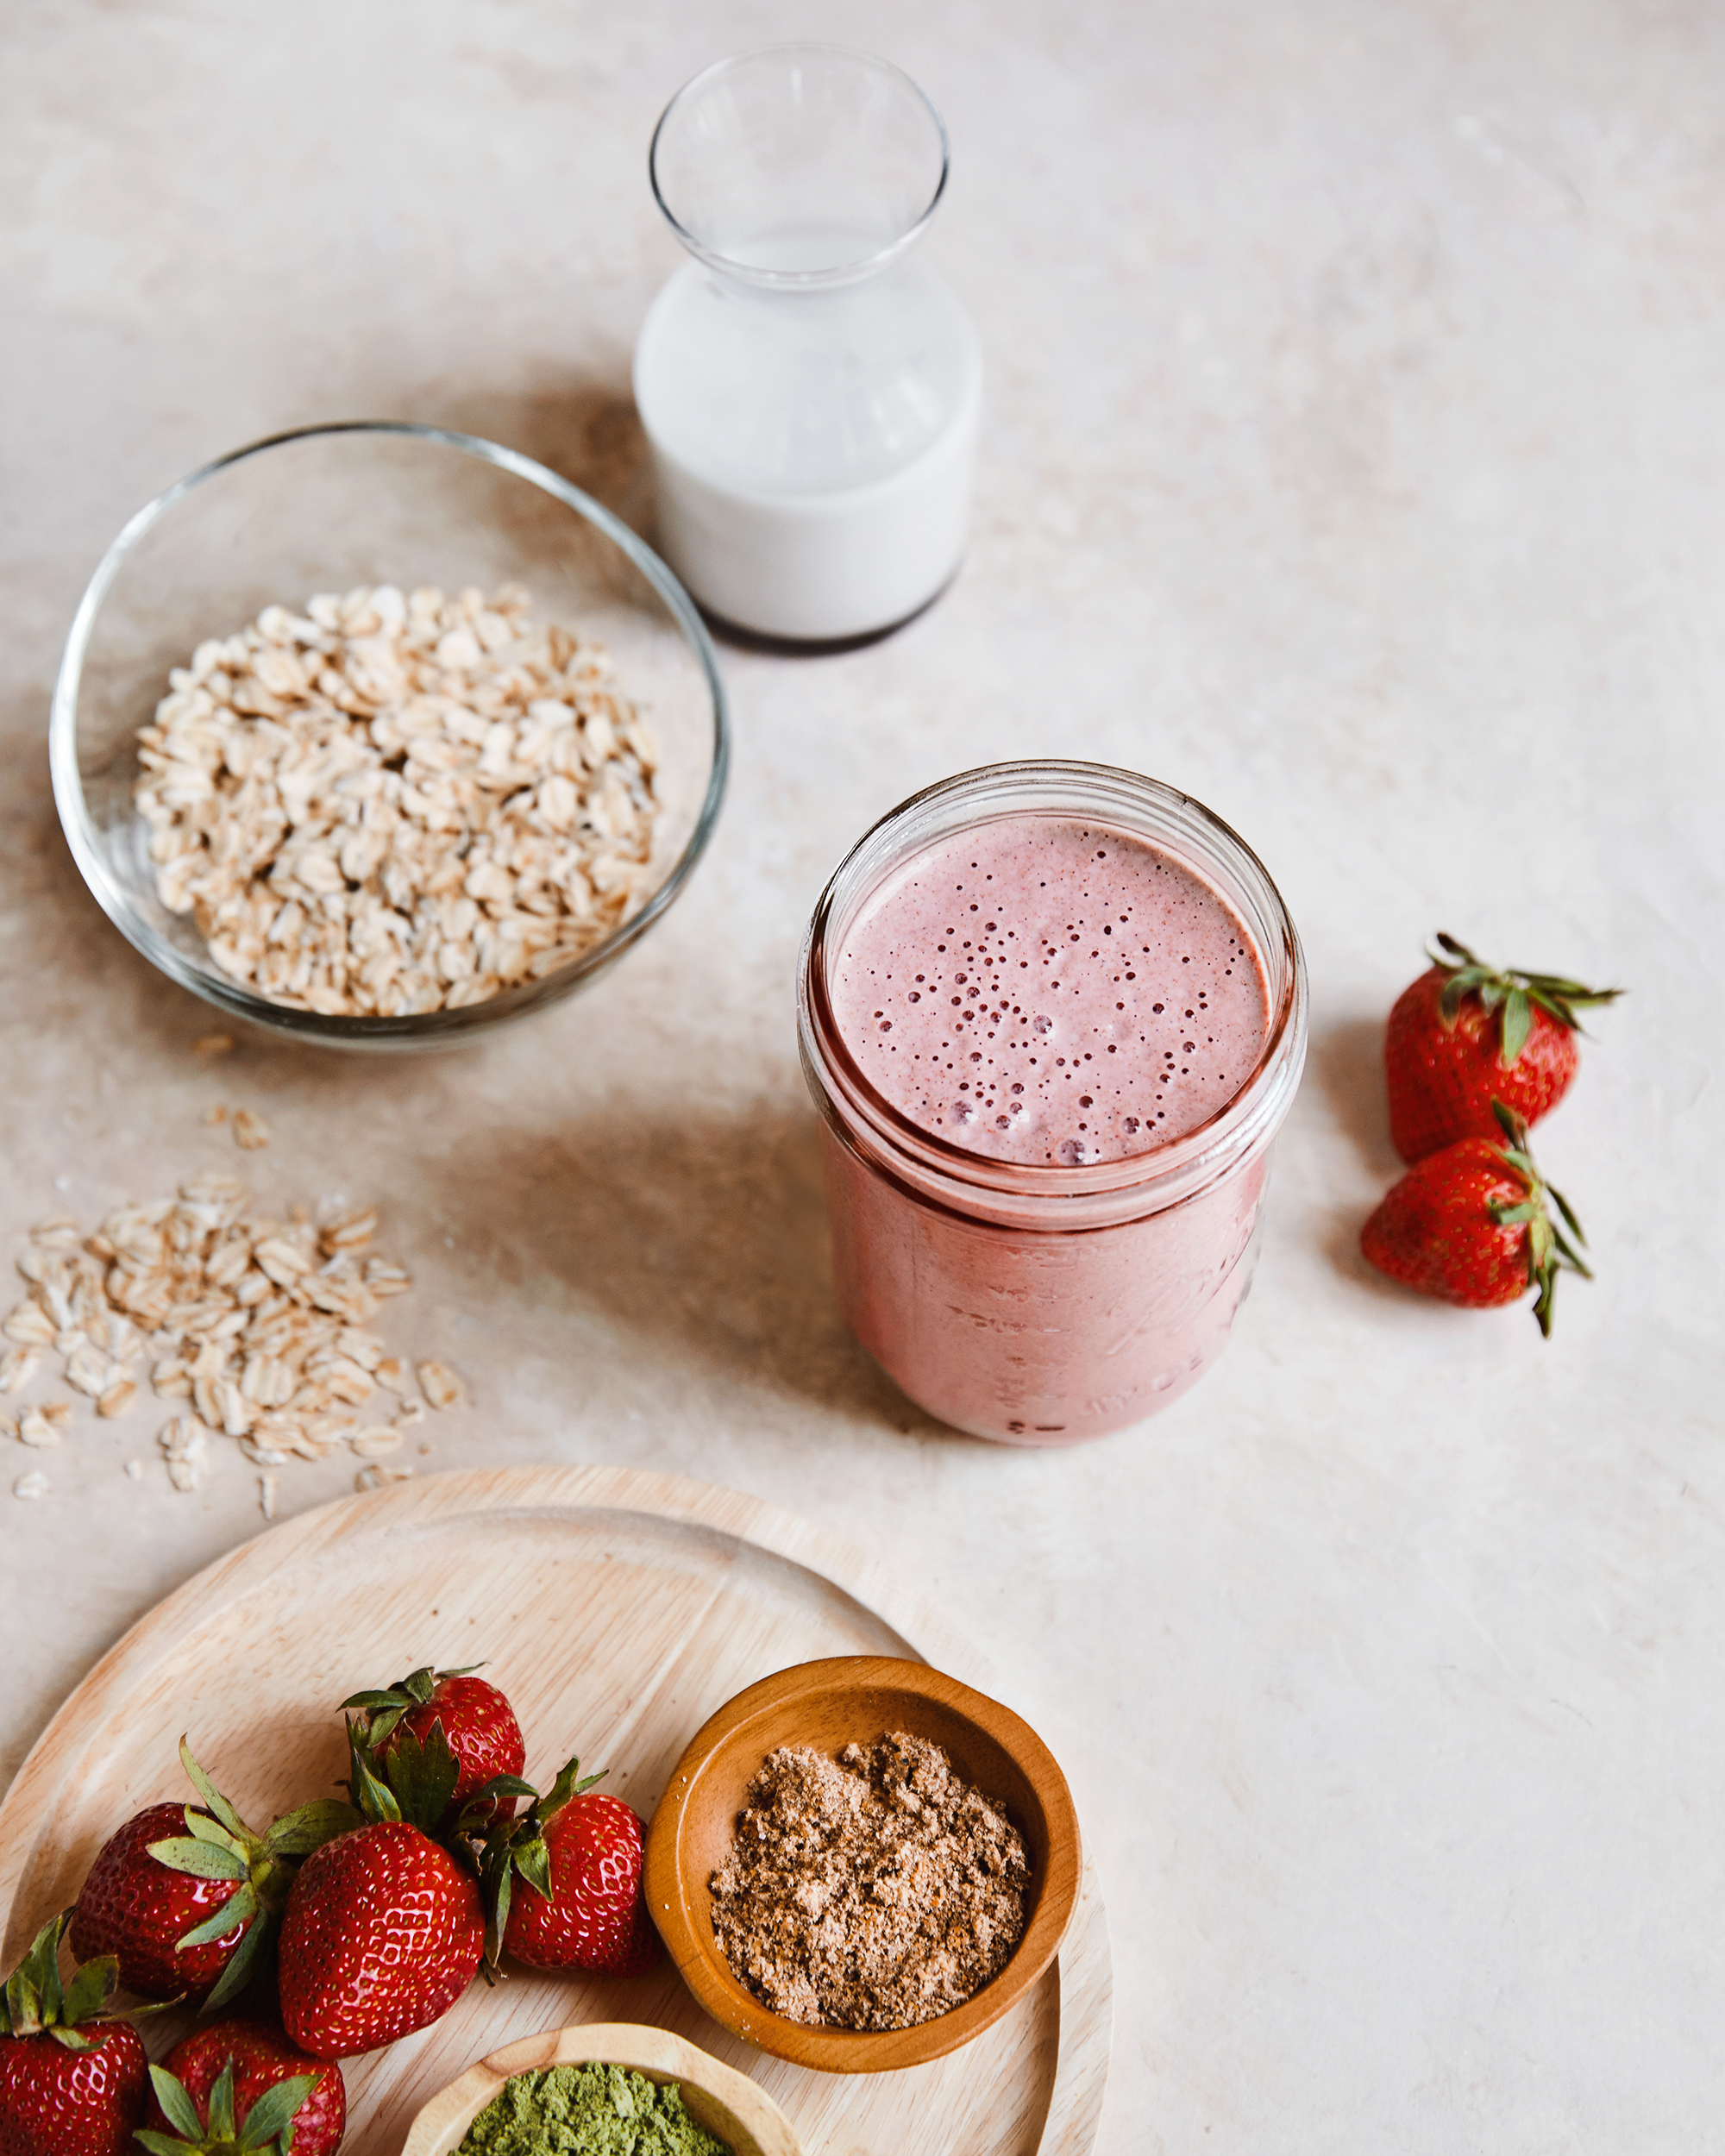 Sweet Strawberry Oatmeal Smoothie